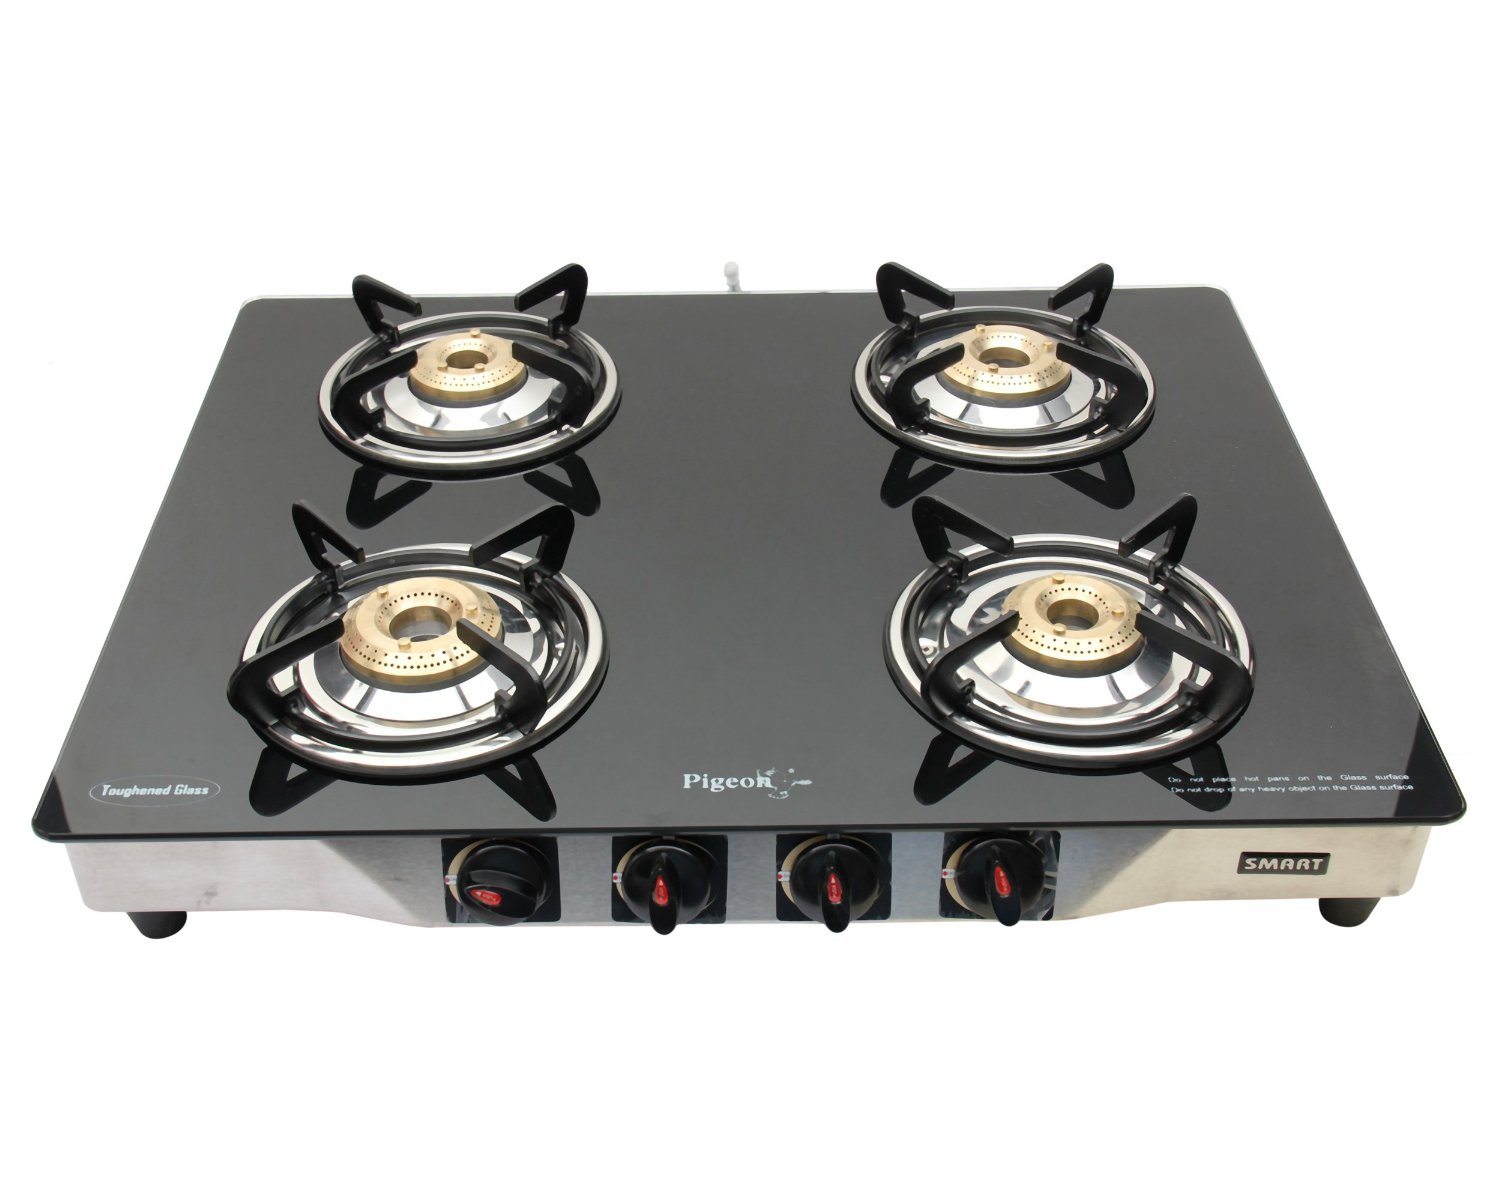 kitchen stove tops gas with Pigeon Blackline Smart Stainless Steel 4 Burner Gas Stove Worth Rs 6990 Rs 3999 5330 on Piano Cottura A Induzione together with Pigeon Blackline Smart Stainless Steel 4 Burner Gas Stove Worth Rs 6990 Rs 3999 5330 together with Kitchens further White Subway Tile Kitchen furthermore Should You Buy Colors For Kitchen Appliances.